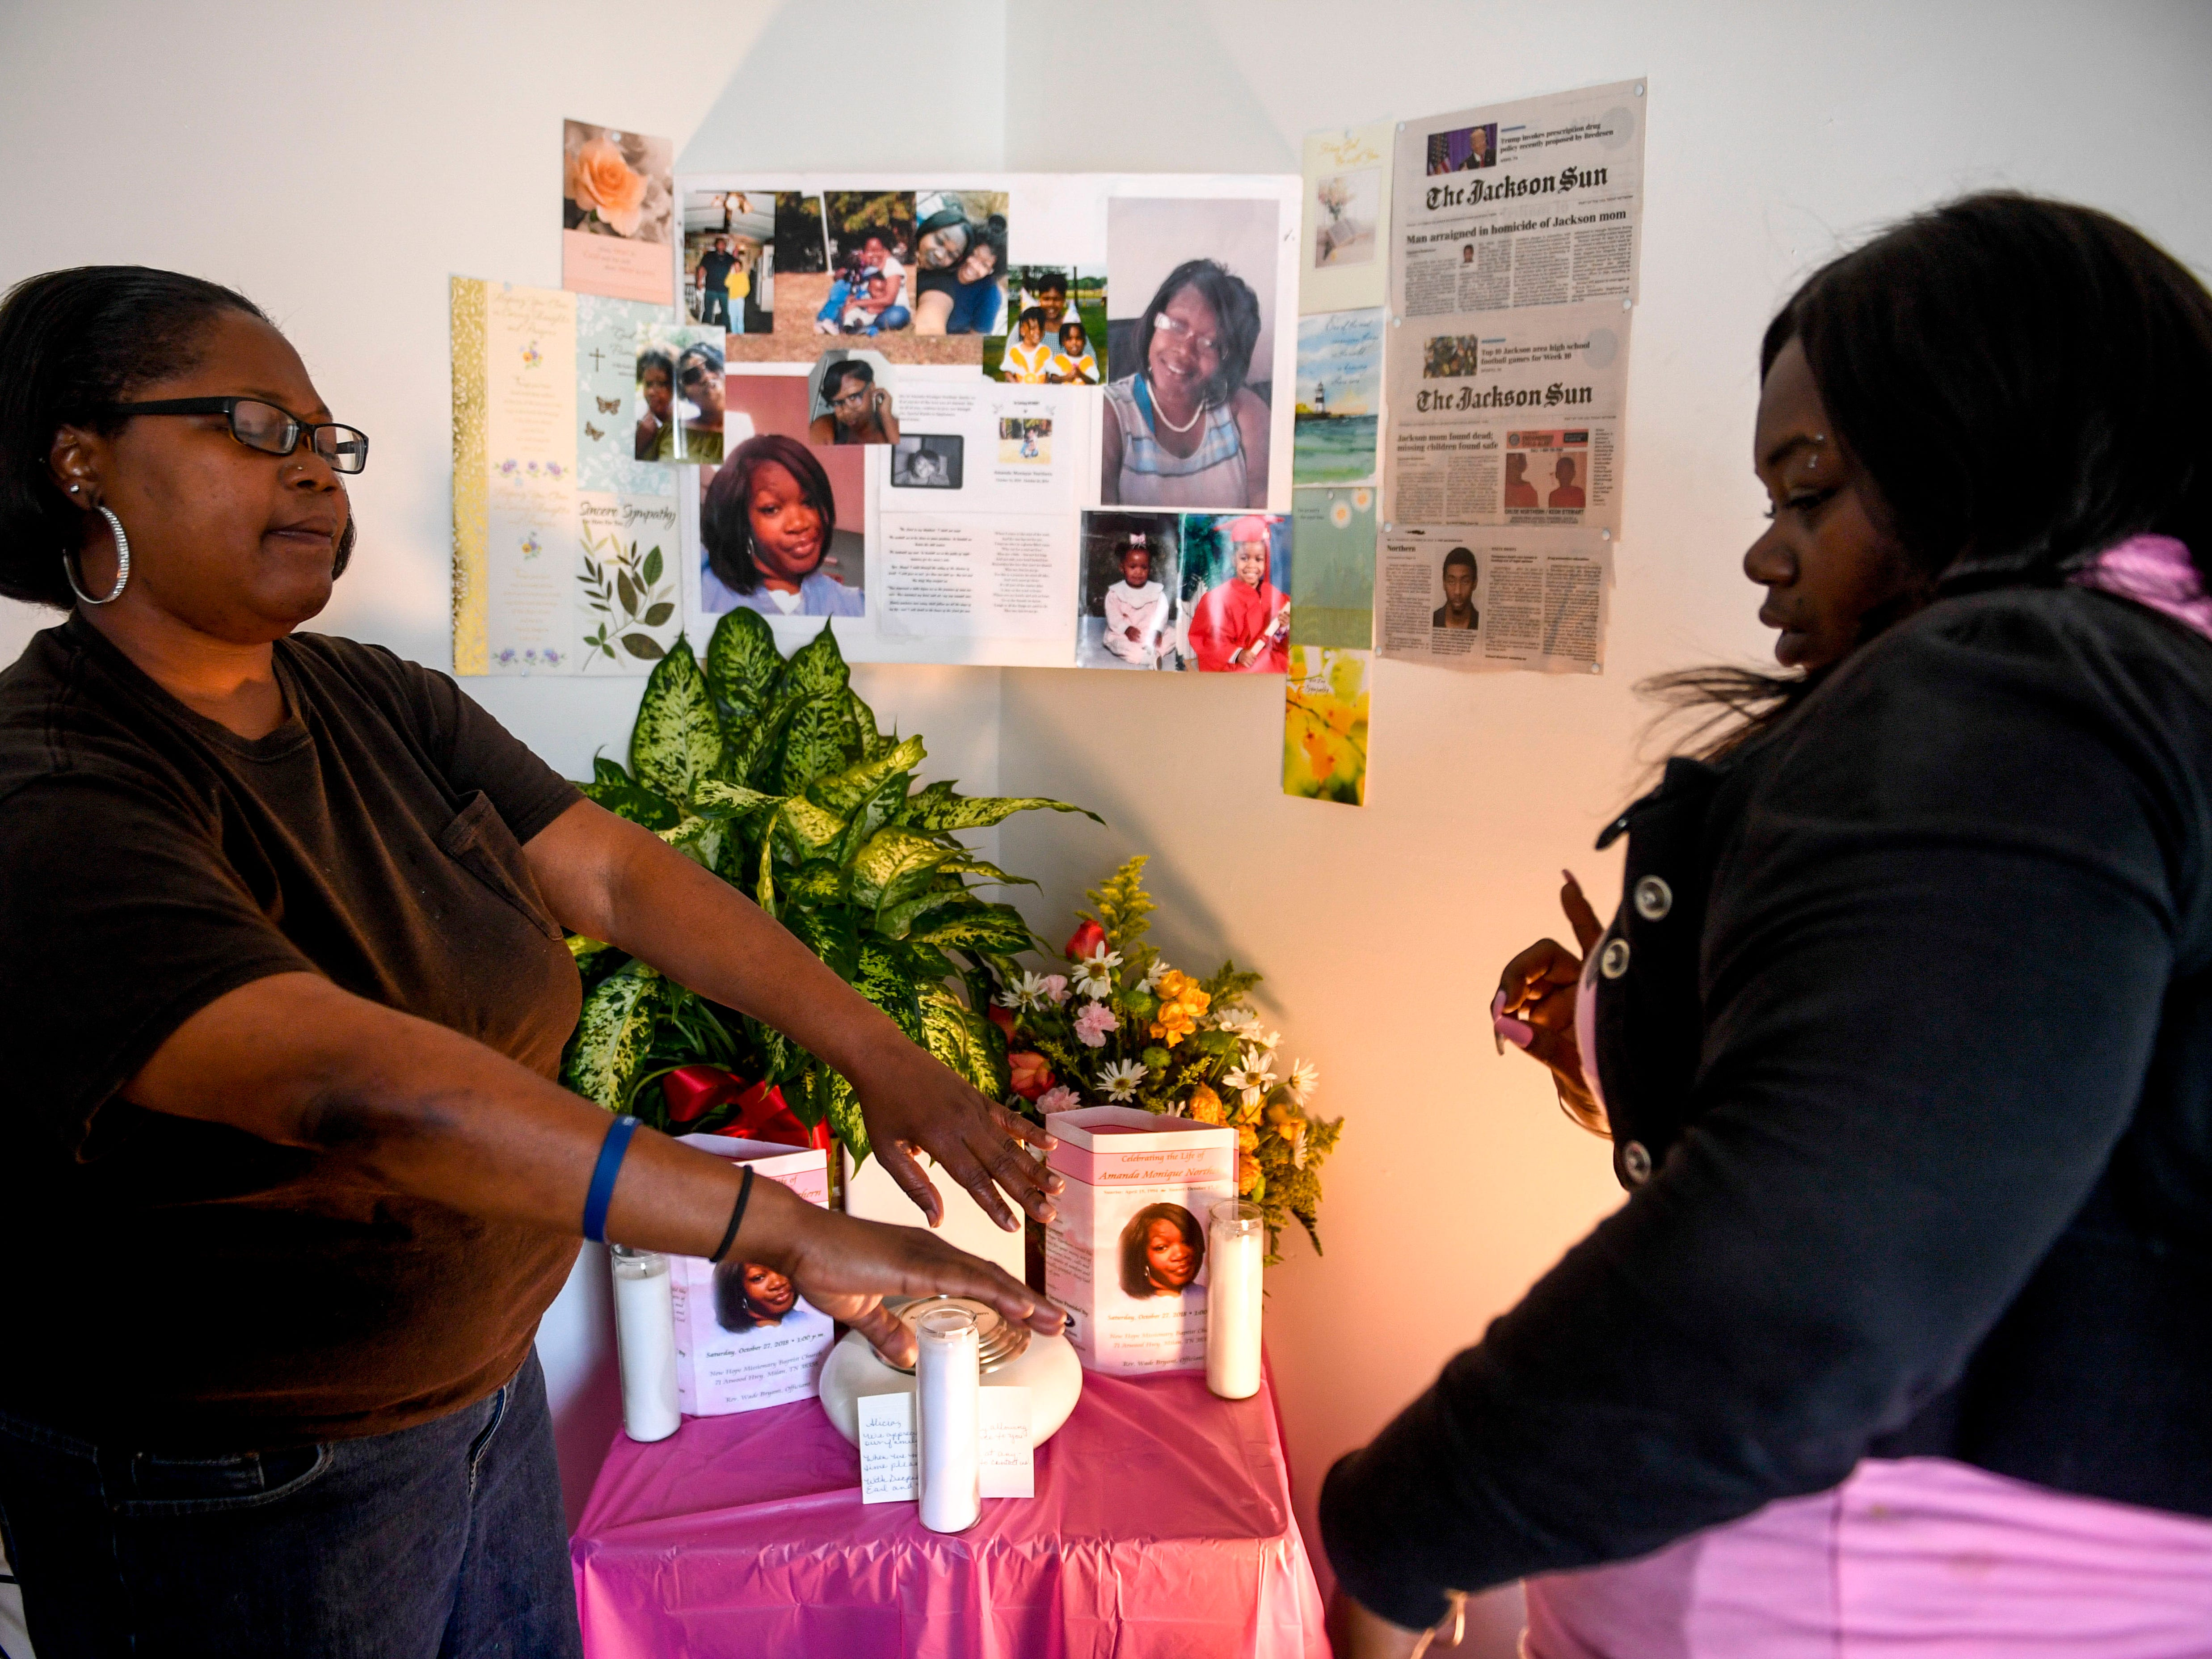 Alicia Hassell stretches out her hands to join with her daughter Ashley in front of a memorial for her daughter she lost to domestic violence, Amanda, at Hassell's home in Jackson, Tenn., on Friday, Nov. 2, 2018.